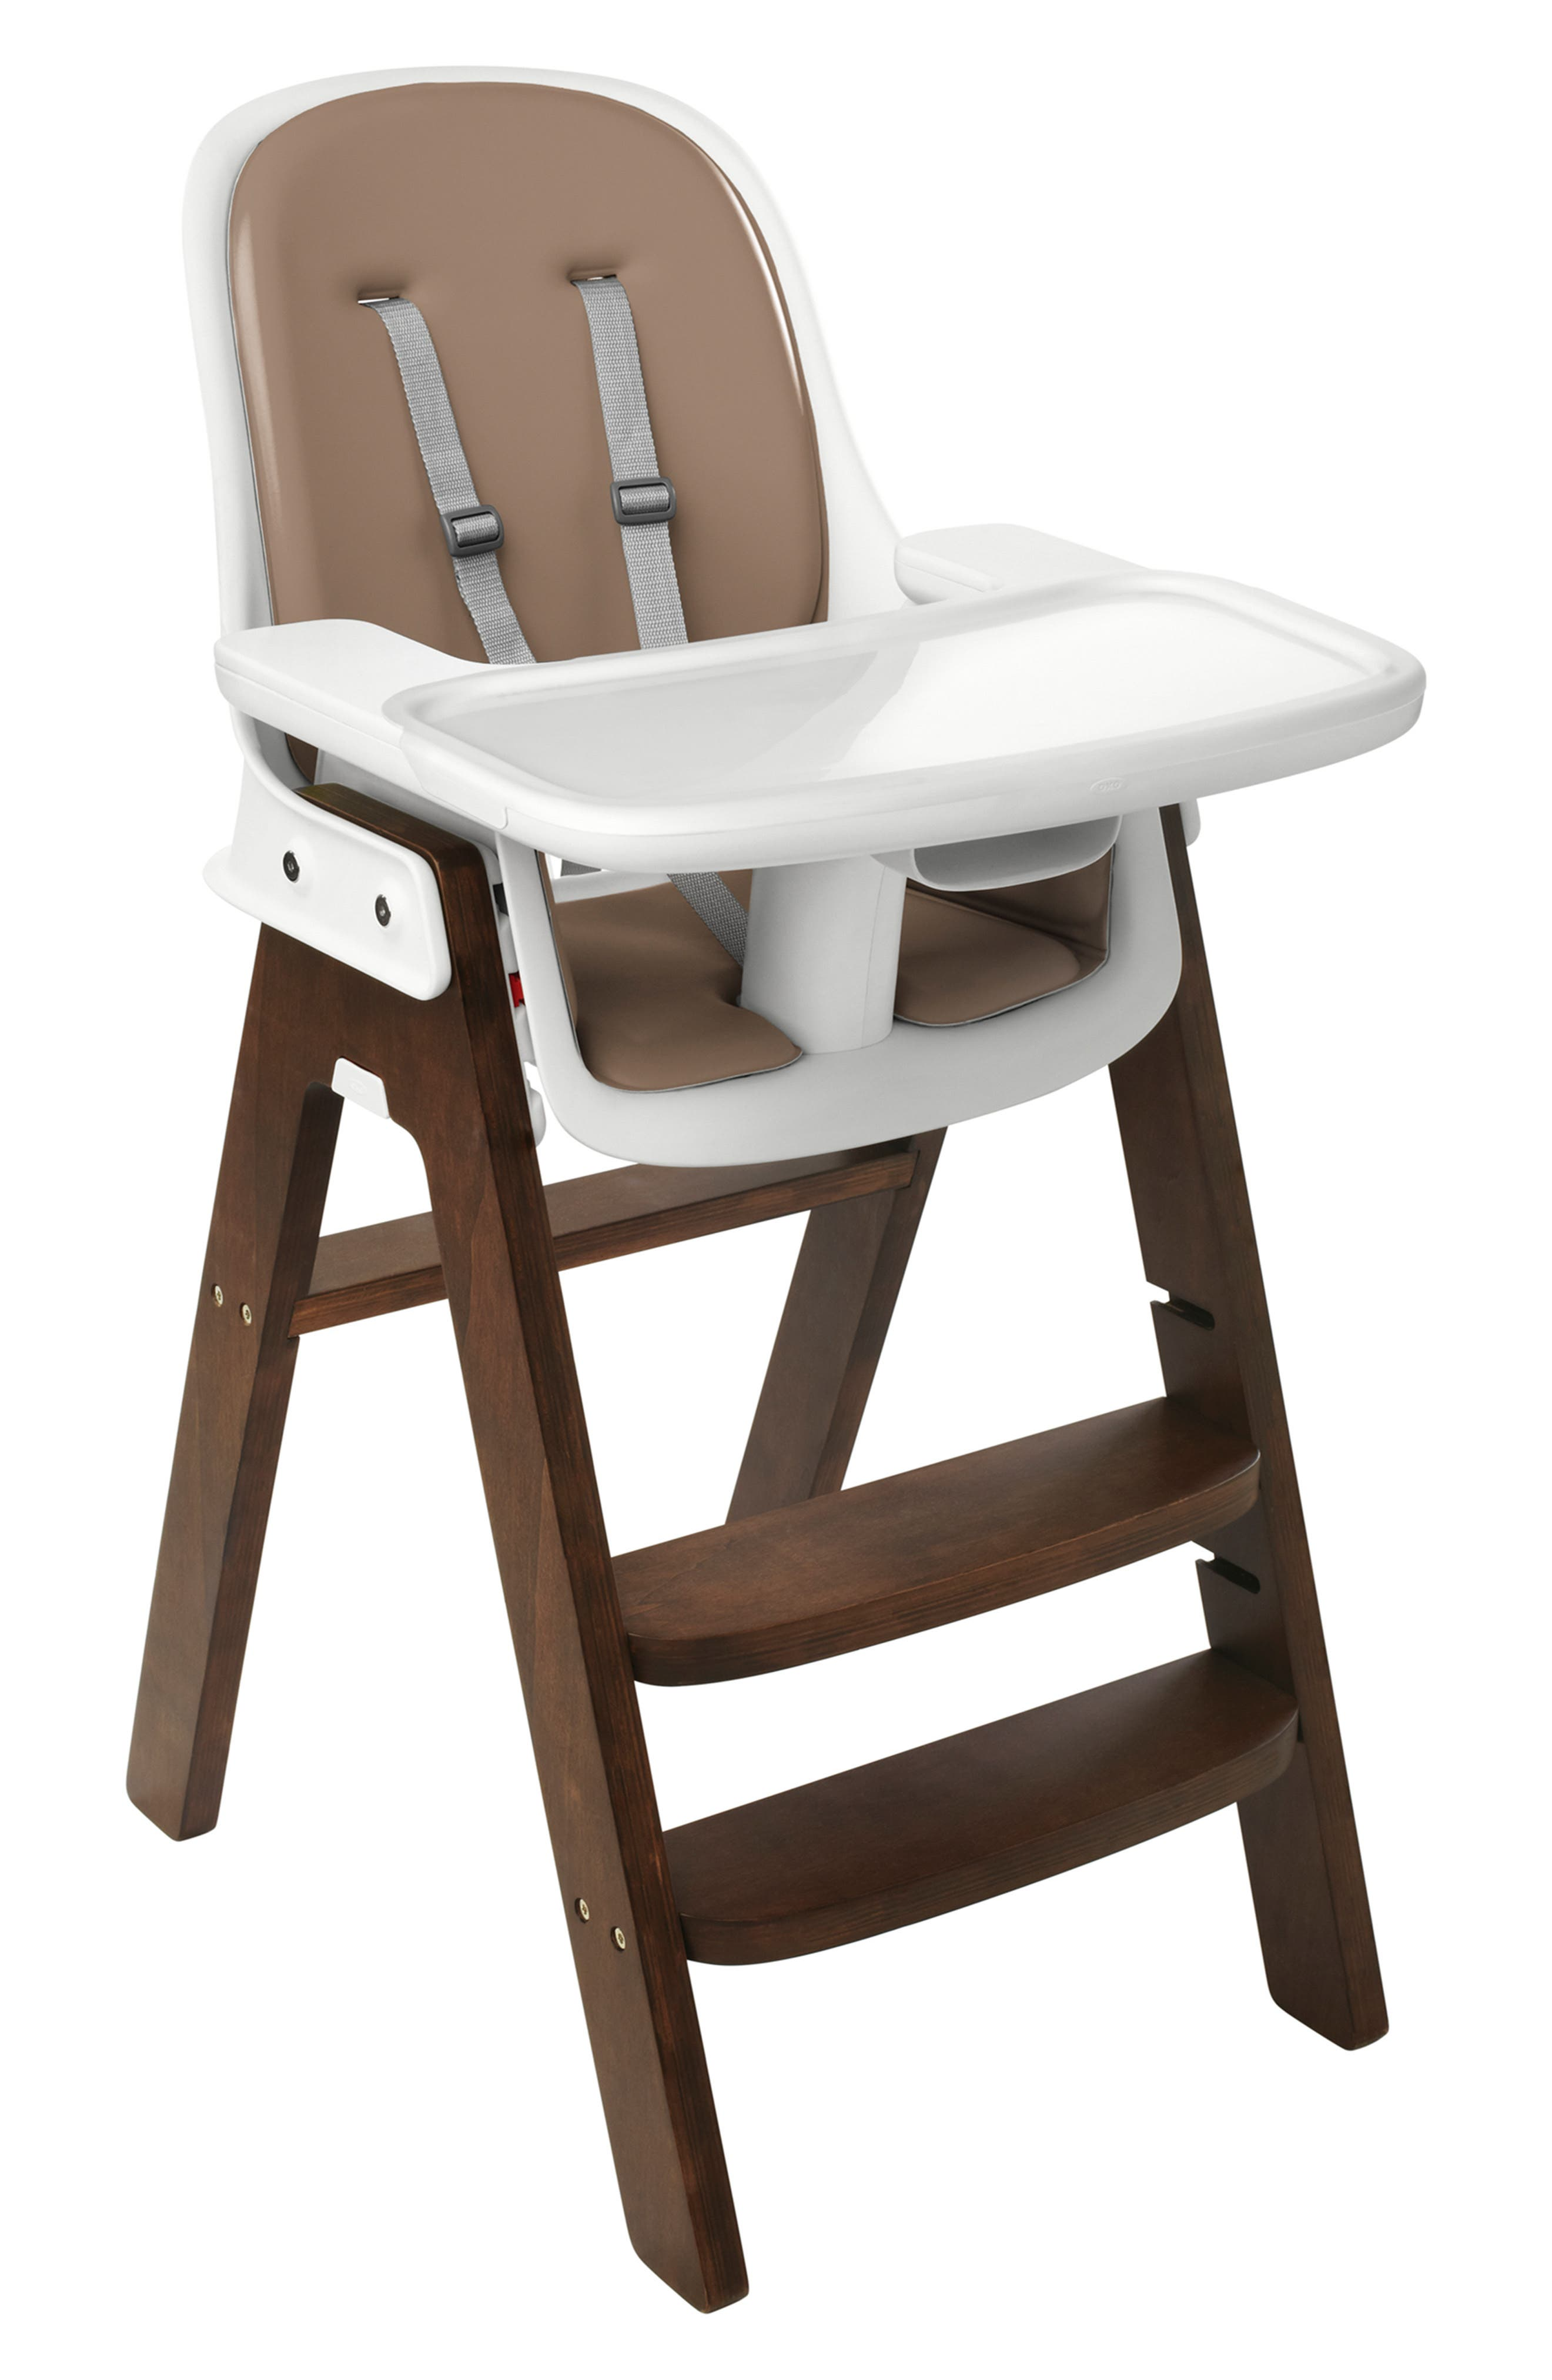 'Sprout' Chair,                             Main thumbnail 1, color,                             GRAY/ WALNUT